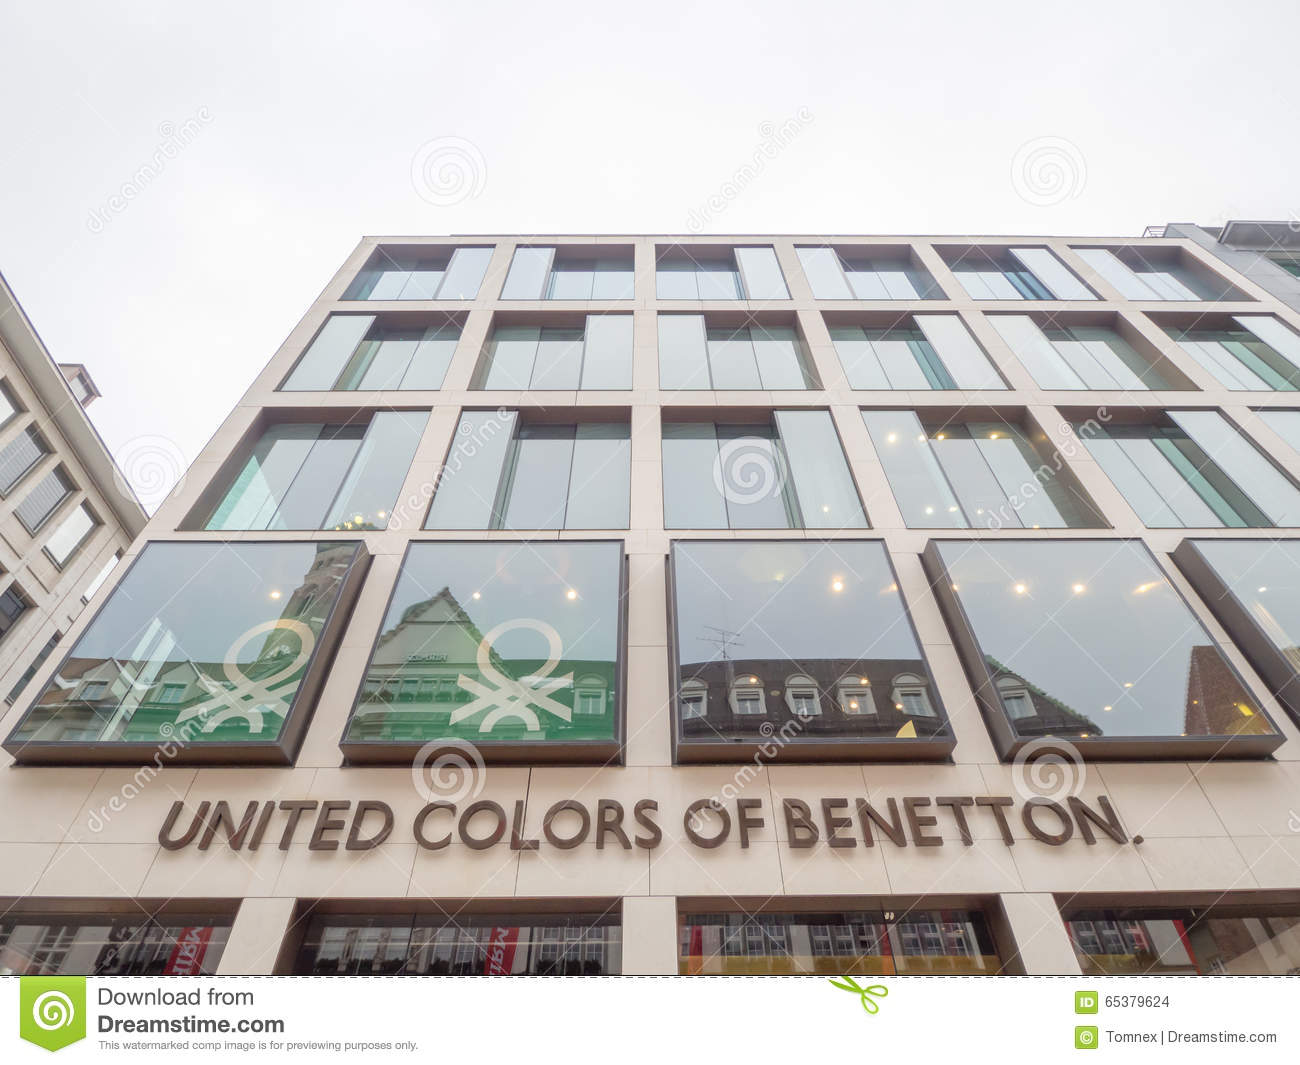 United colors of benetton munich editorial stock image for United colors of benetton usa